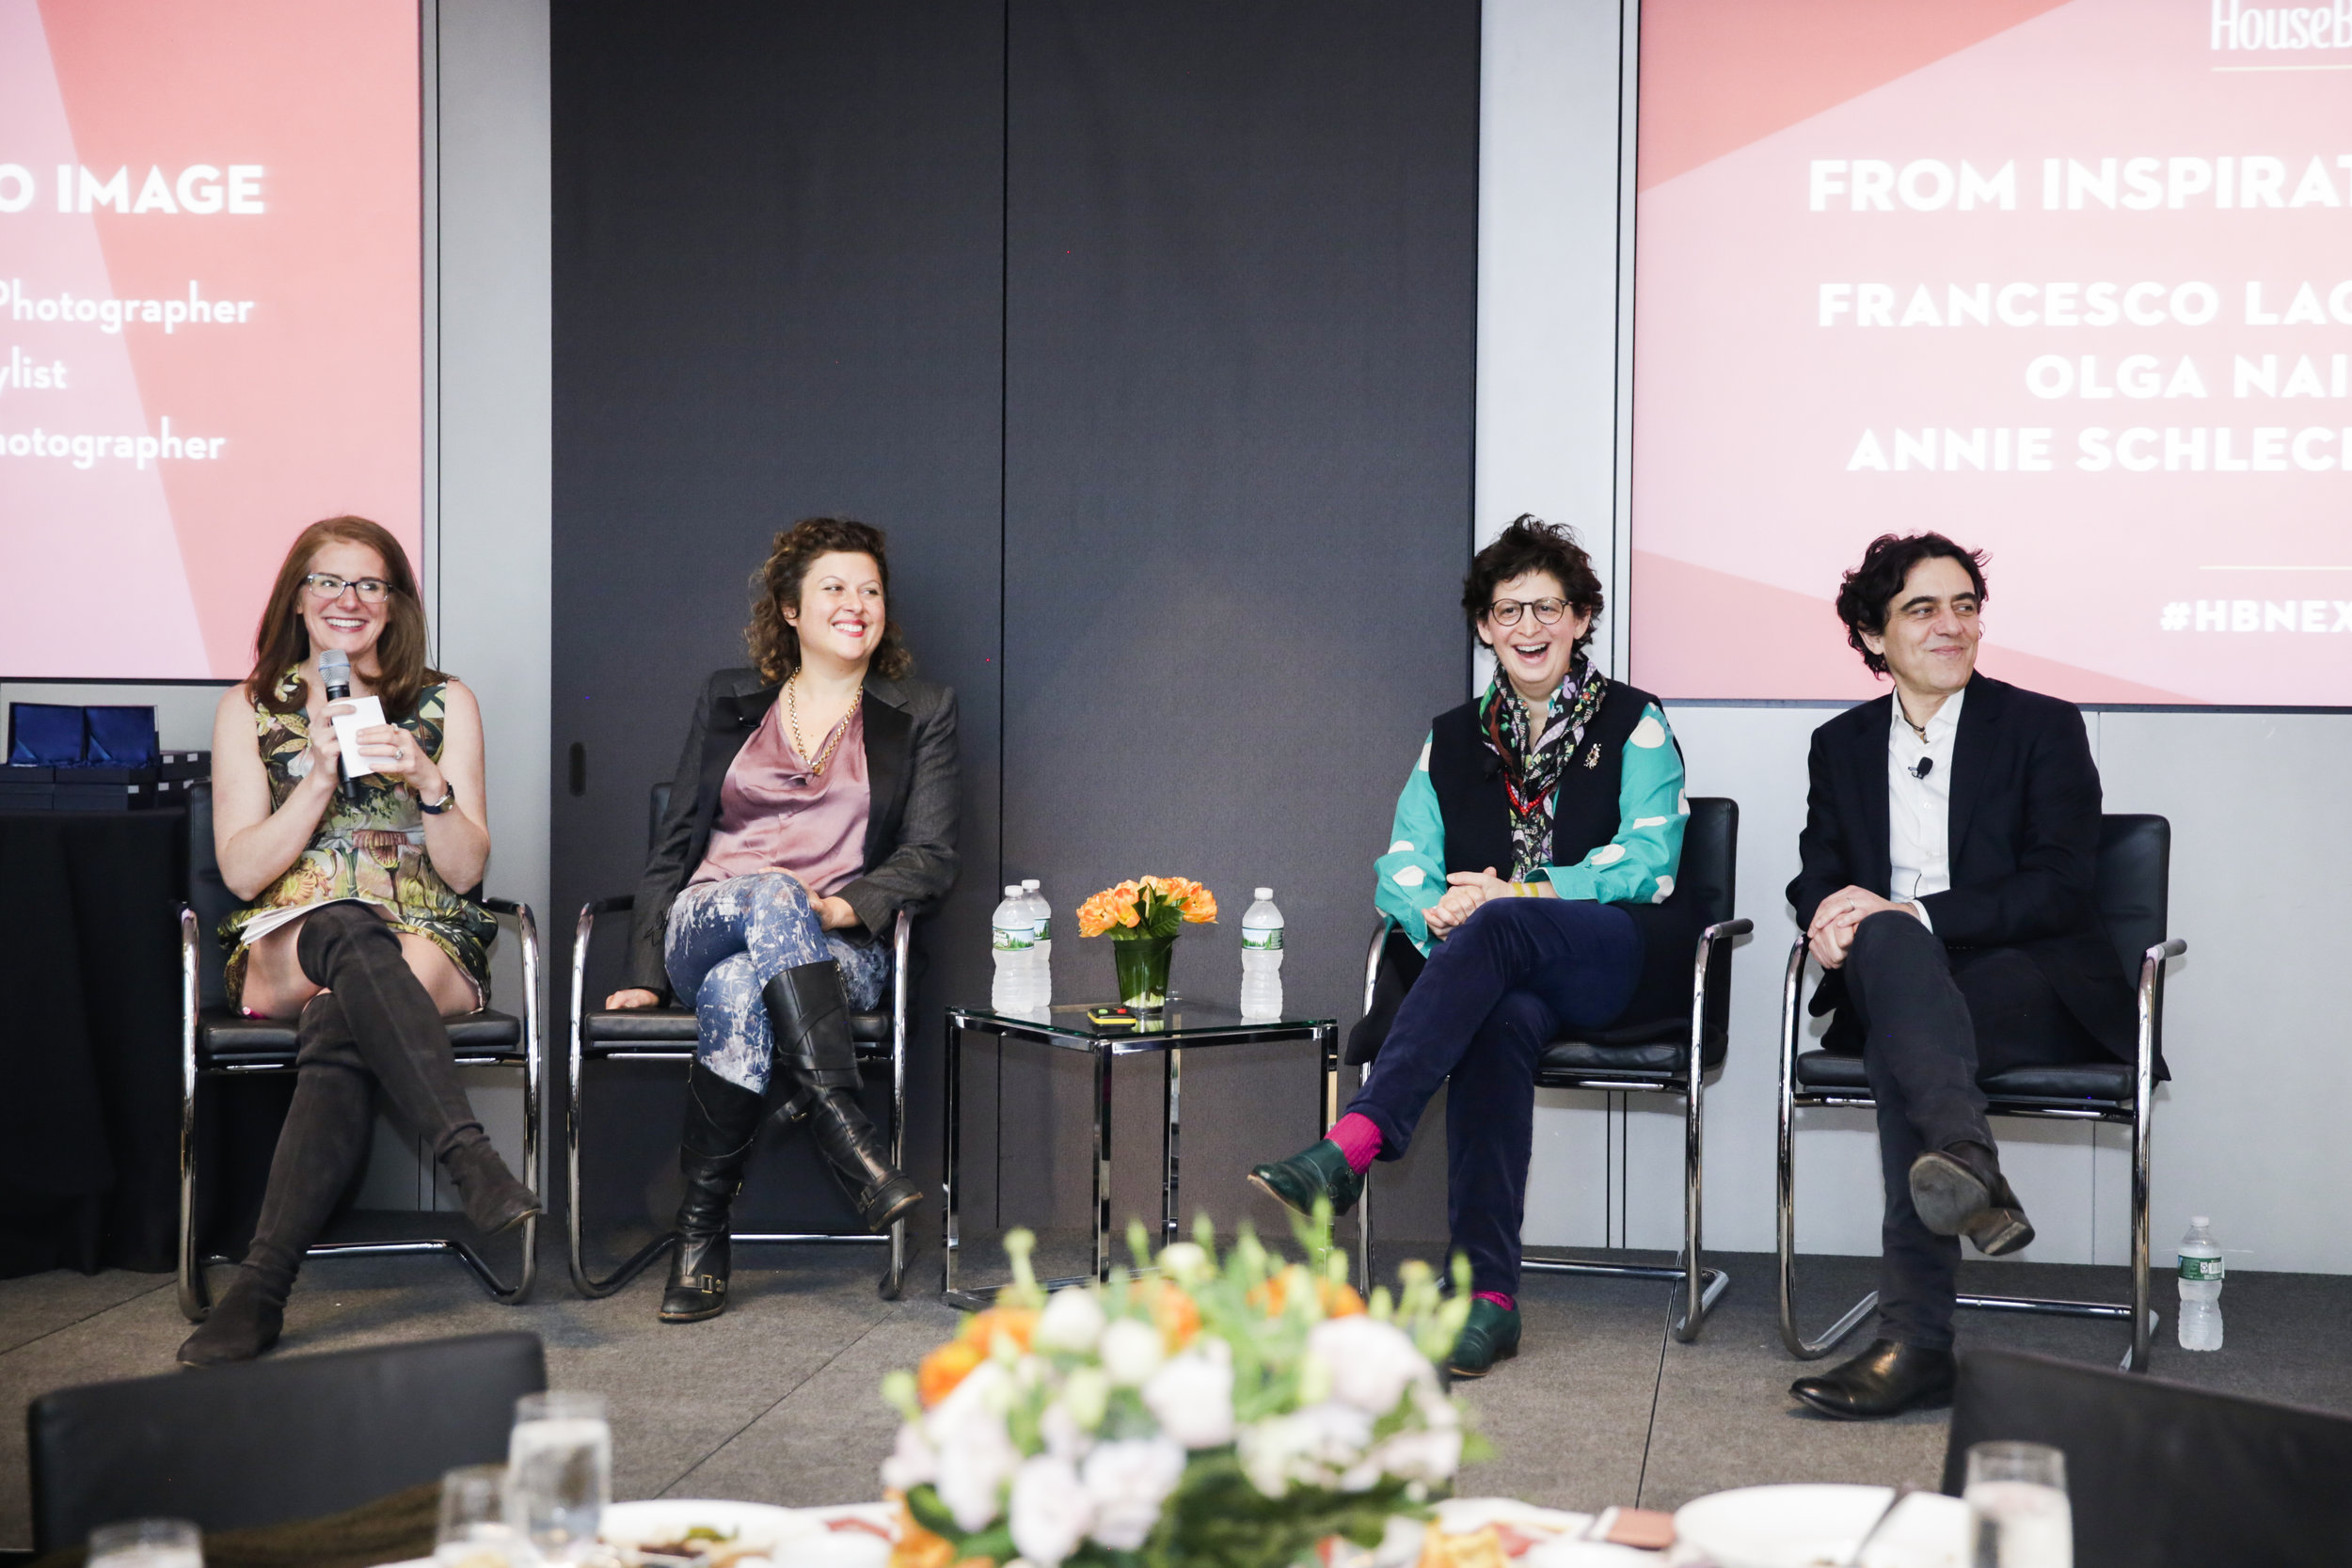 """""""From Inspiration to Image' Panel Discussion – Sophie Donelson, Olga Naiman, Annie Schlechter and Francesco Lagnese"""